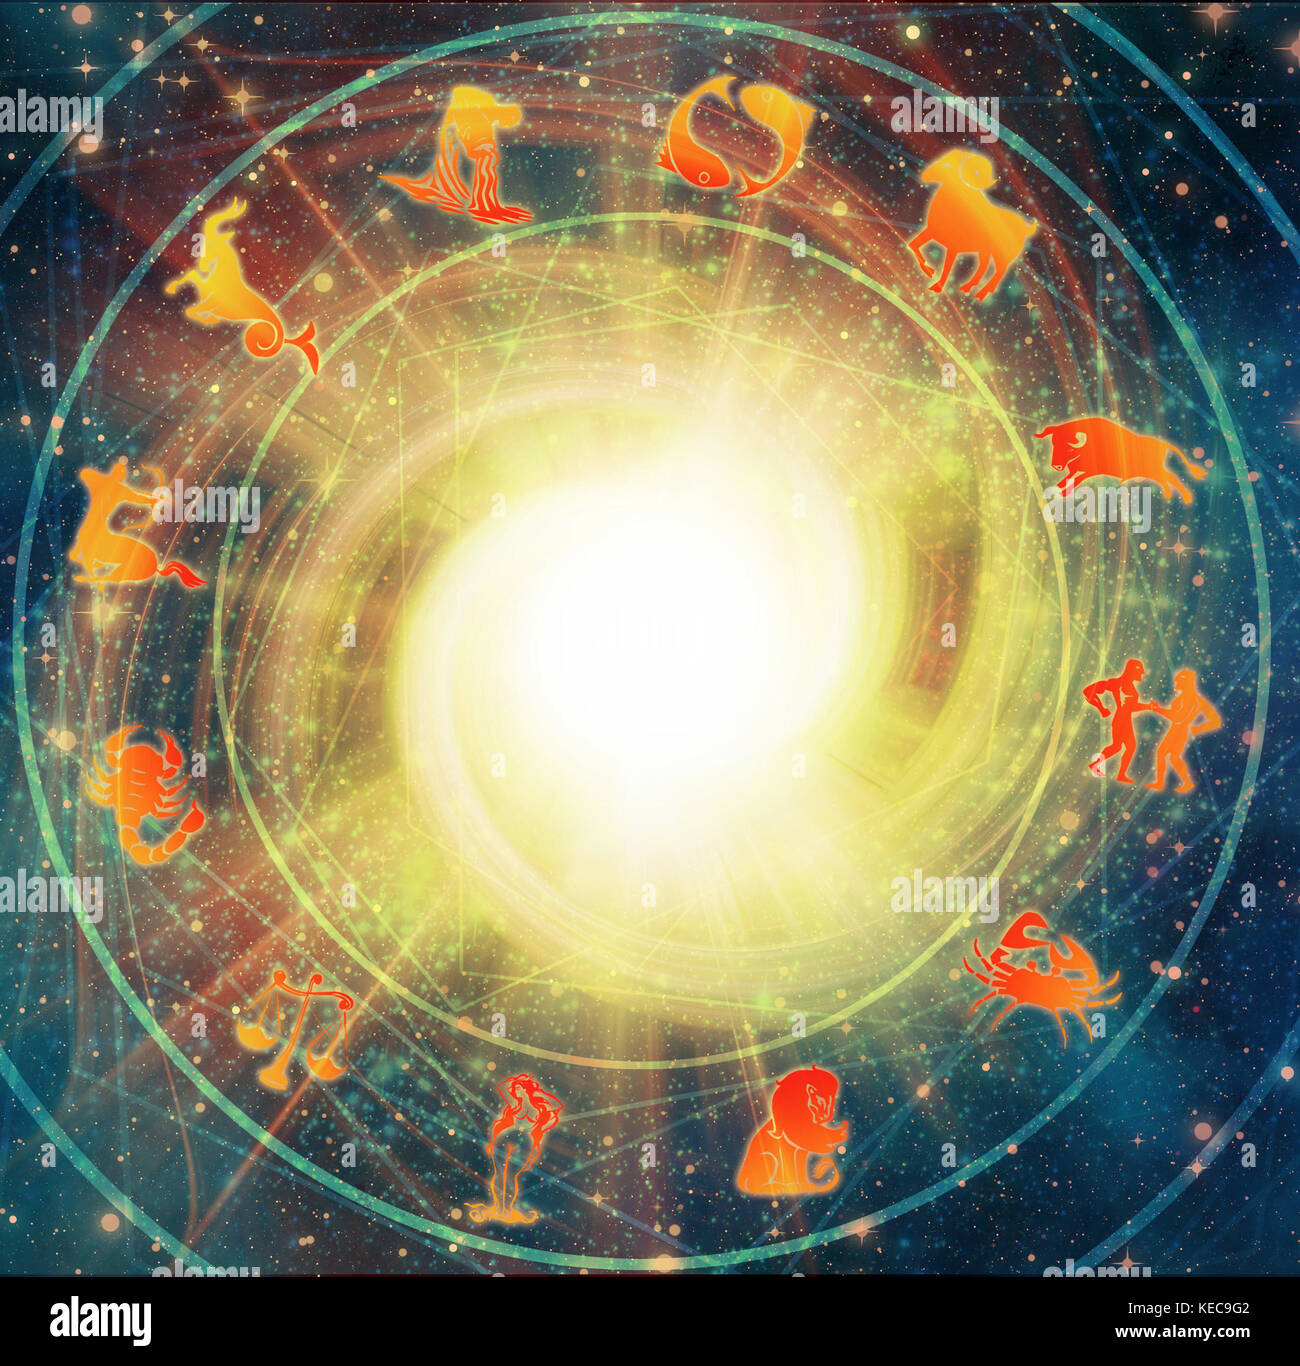 Astrology Chart With All The Signs Of Zodiac